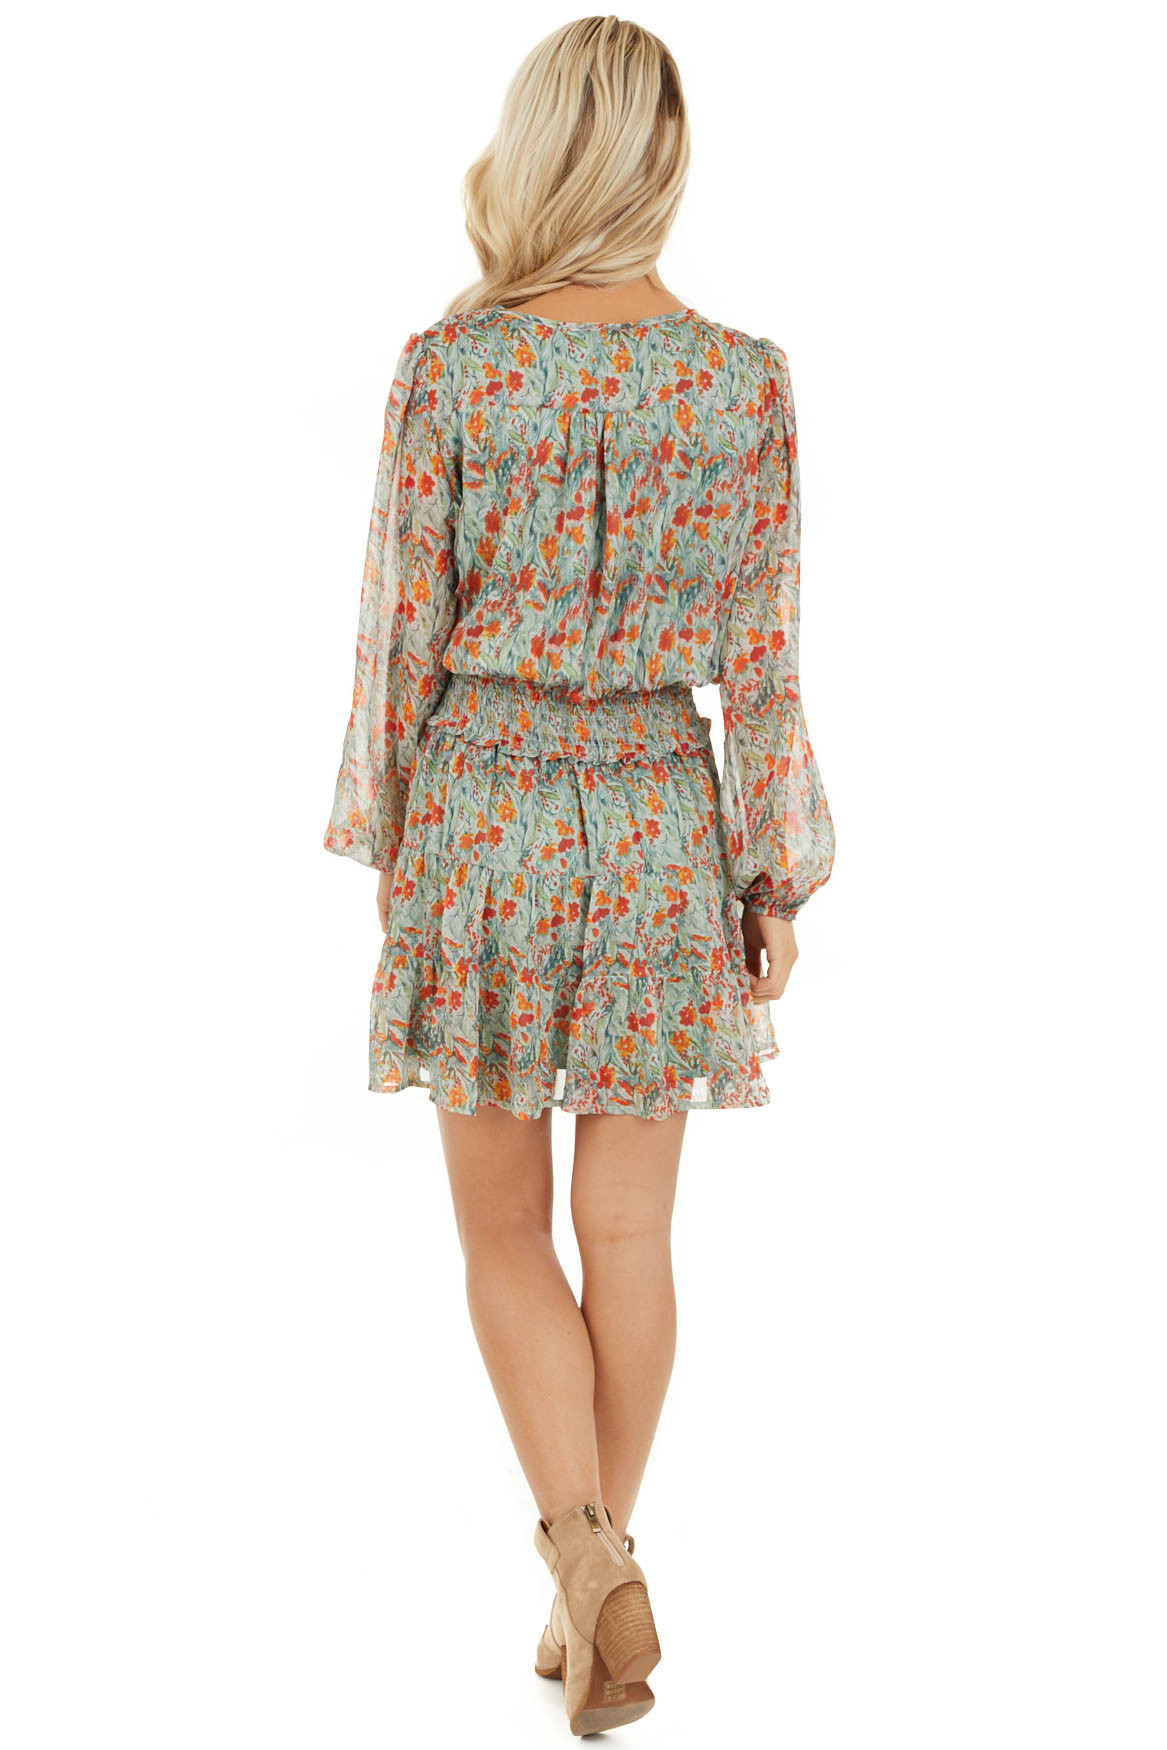 Mint and Tangerine Floral Print Dress with Smocked Waist back full body